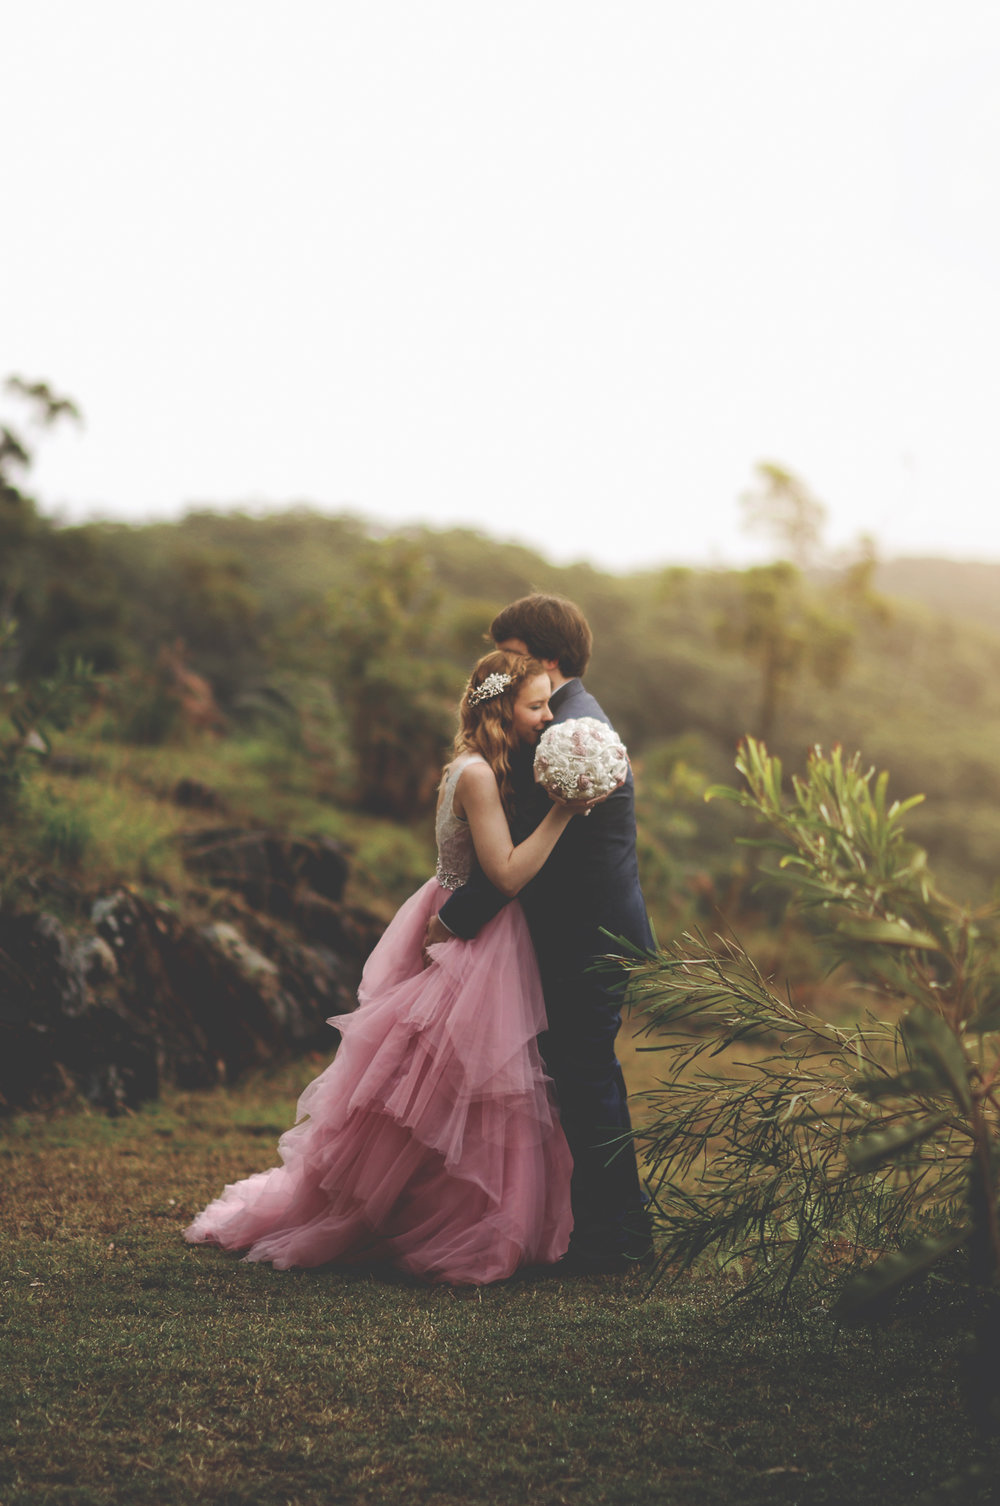 Byron Bay Wedding Photographer Lovelenscapes Photography